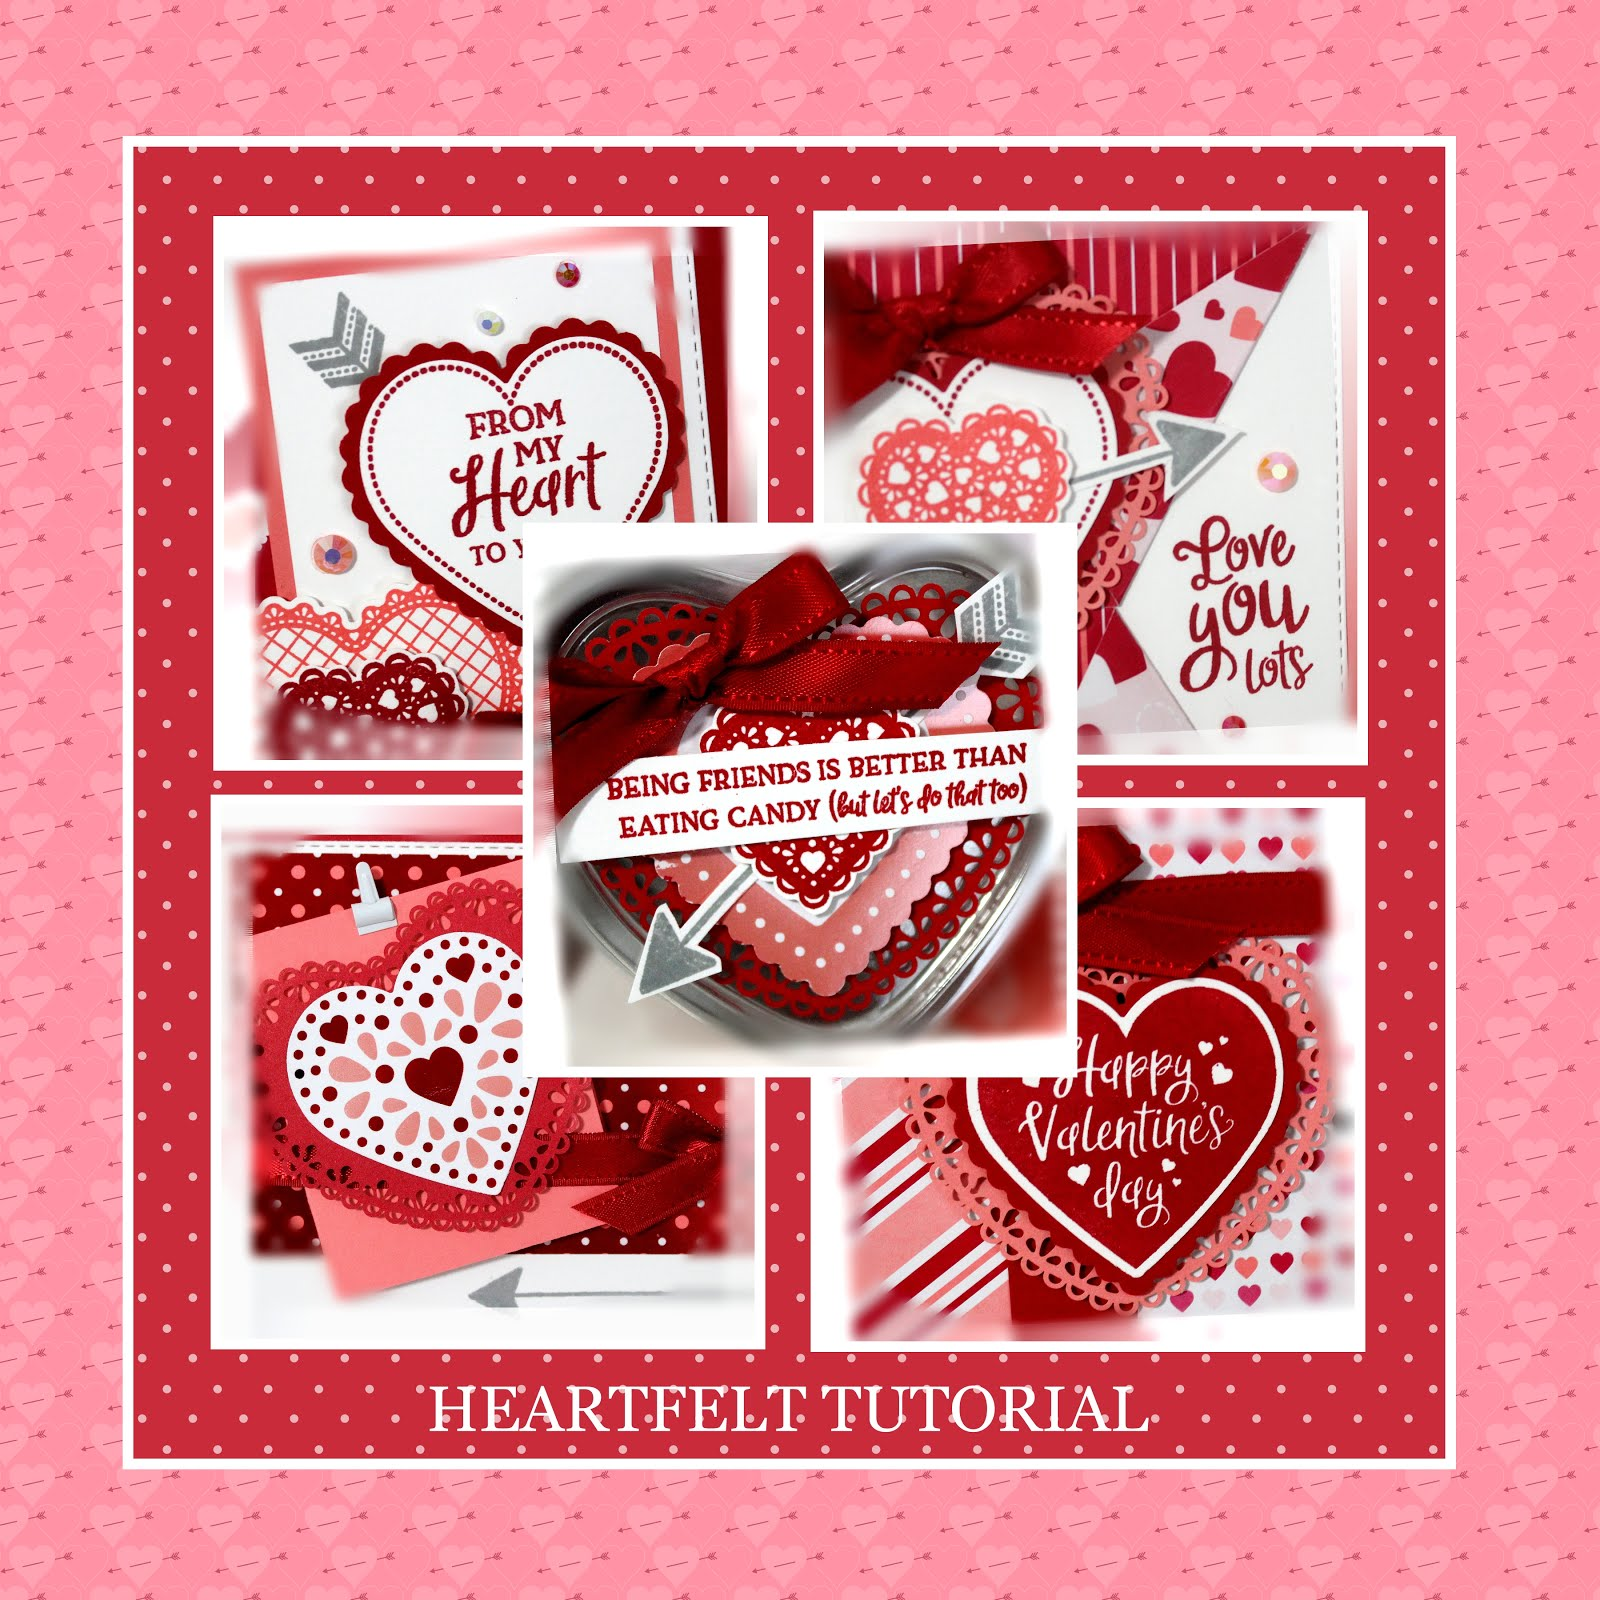 January 2020 Heartfelt Tutorial